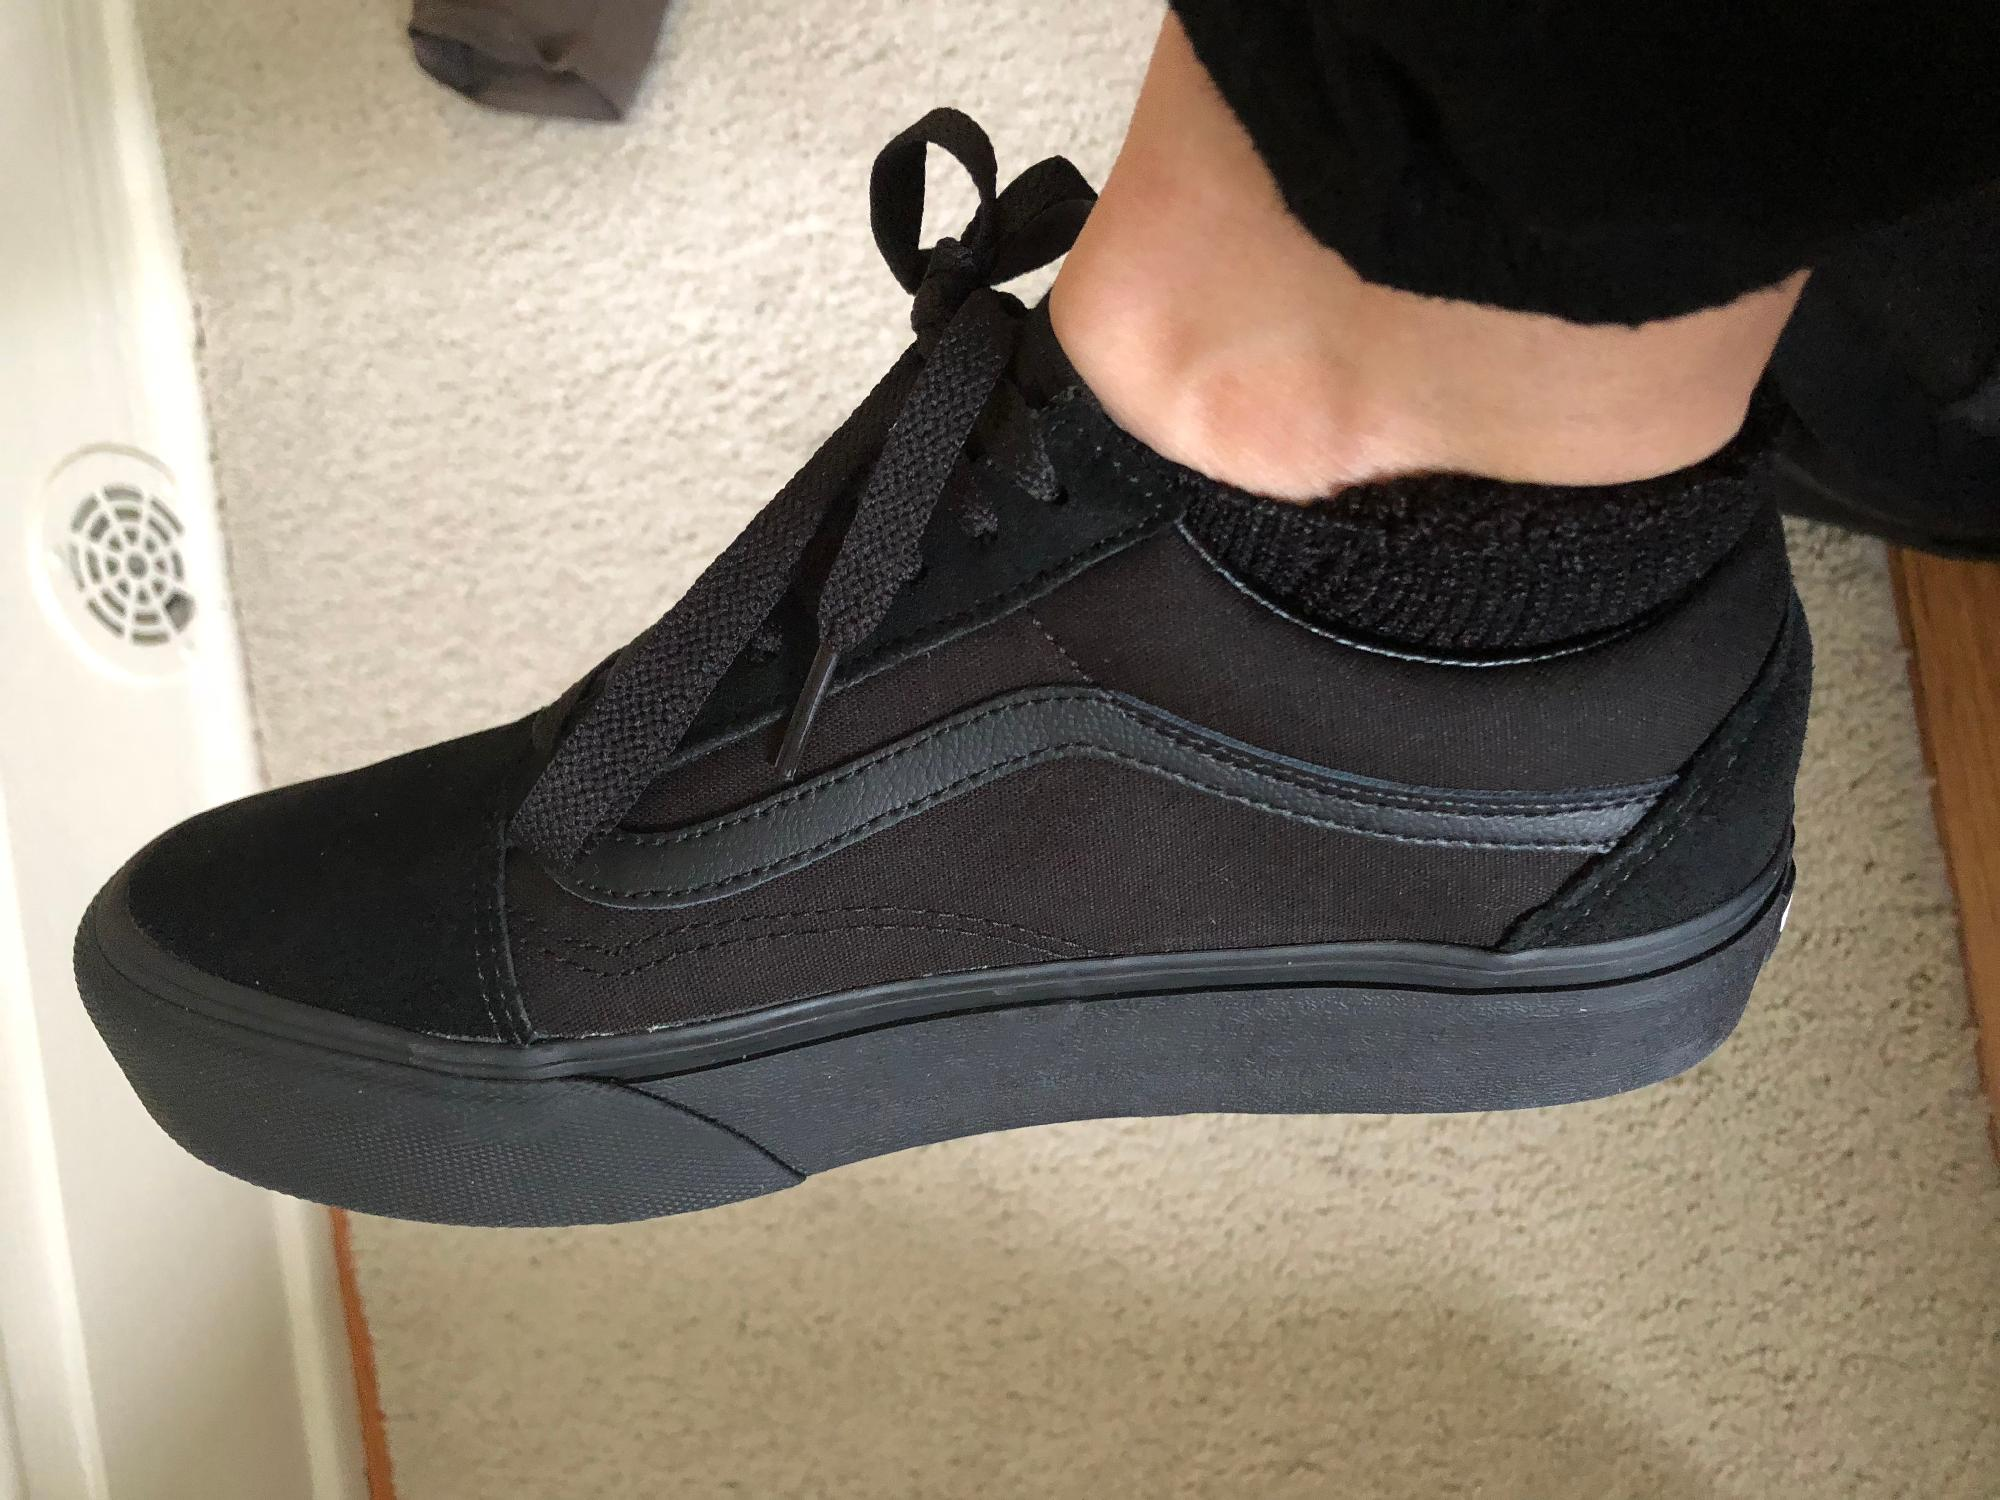 Vans Old Skool Platform Reviews | Zappos.com